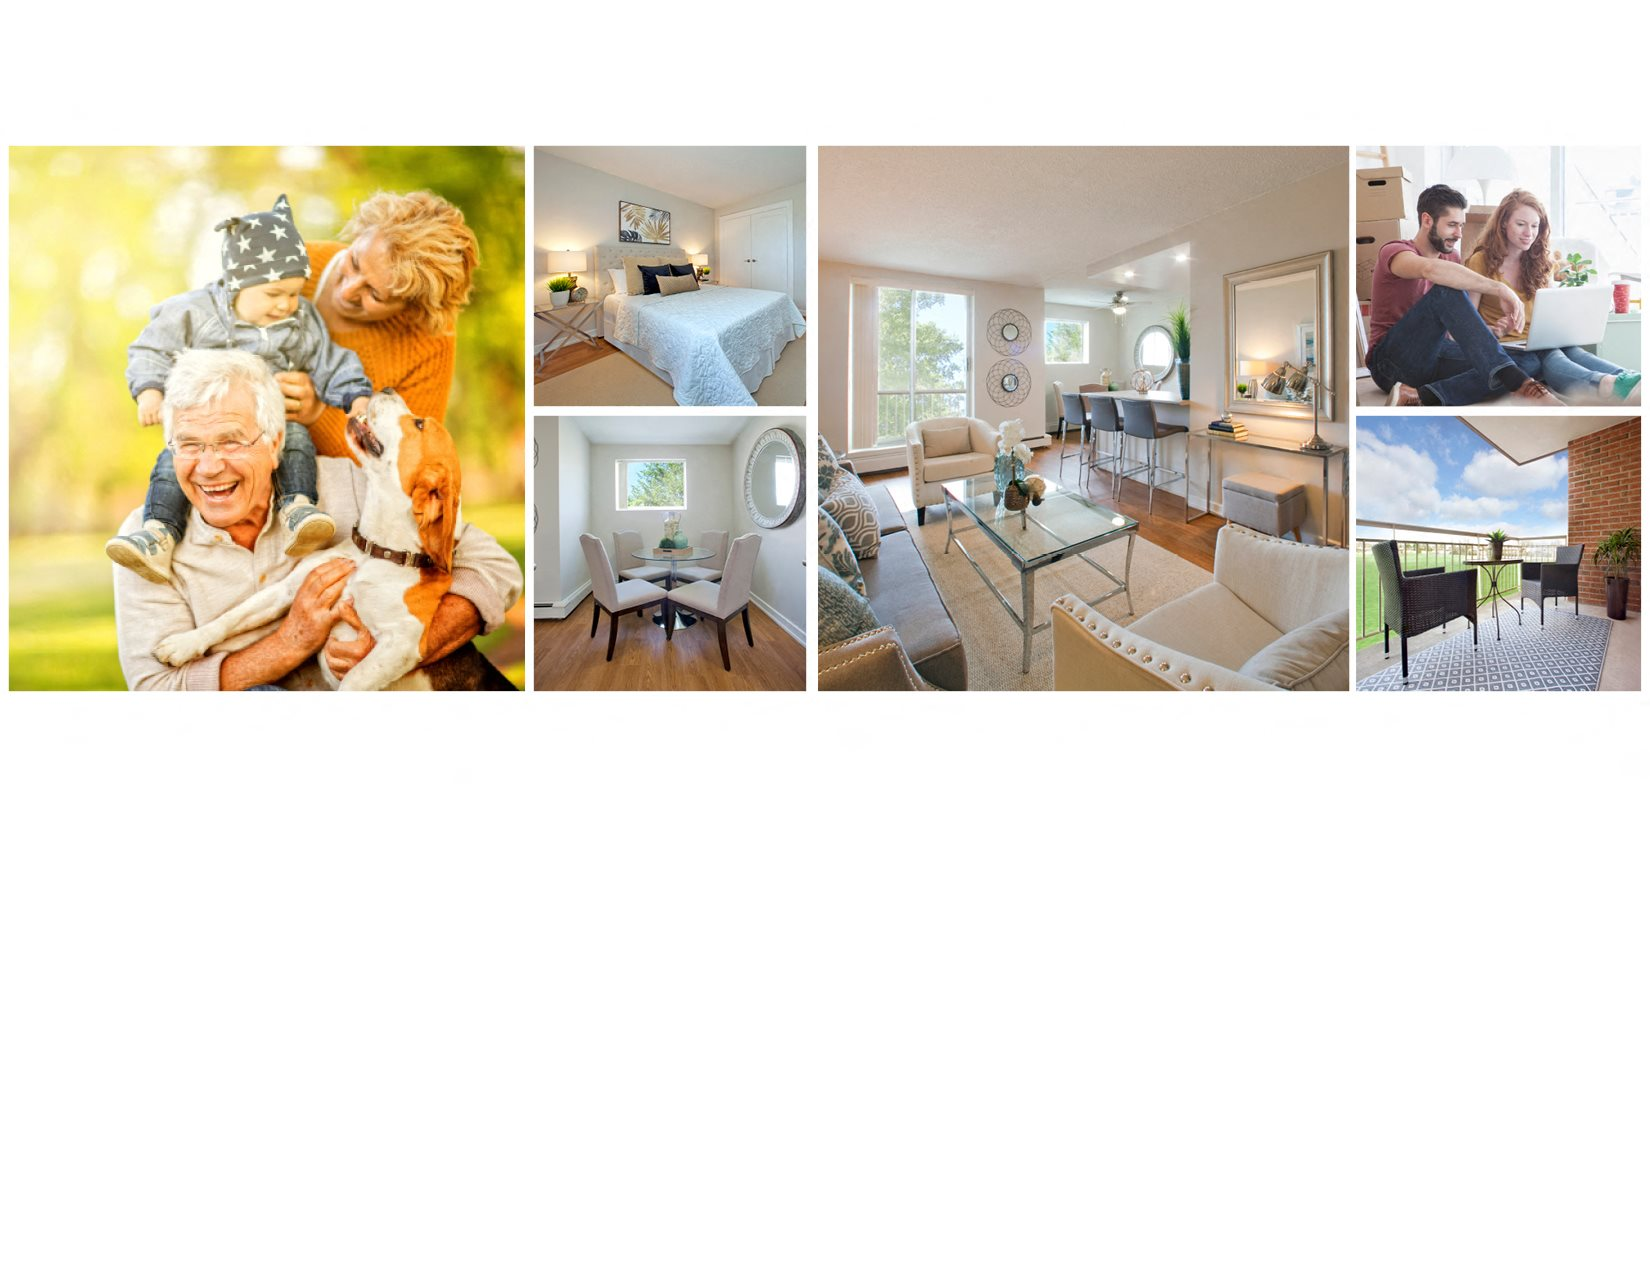 Collage of interior, exterior, and lifestyle images at Lyndon Place in Niagara Falls, ON